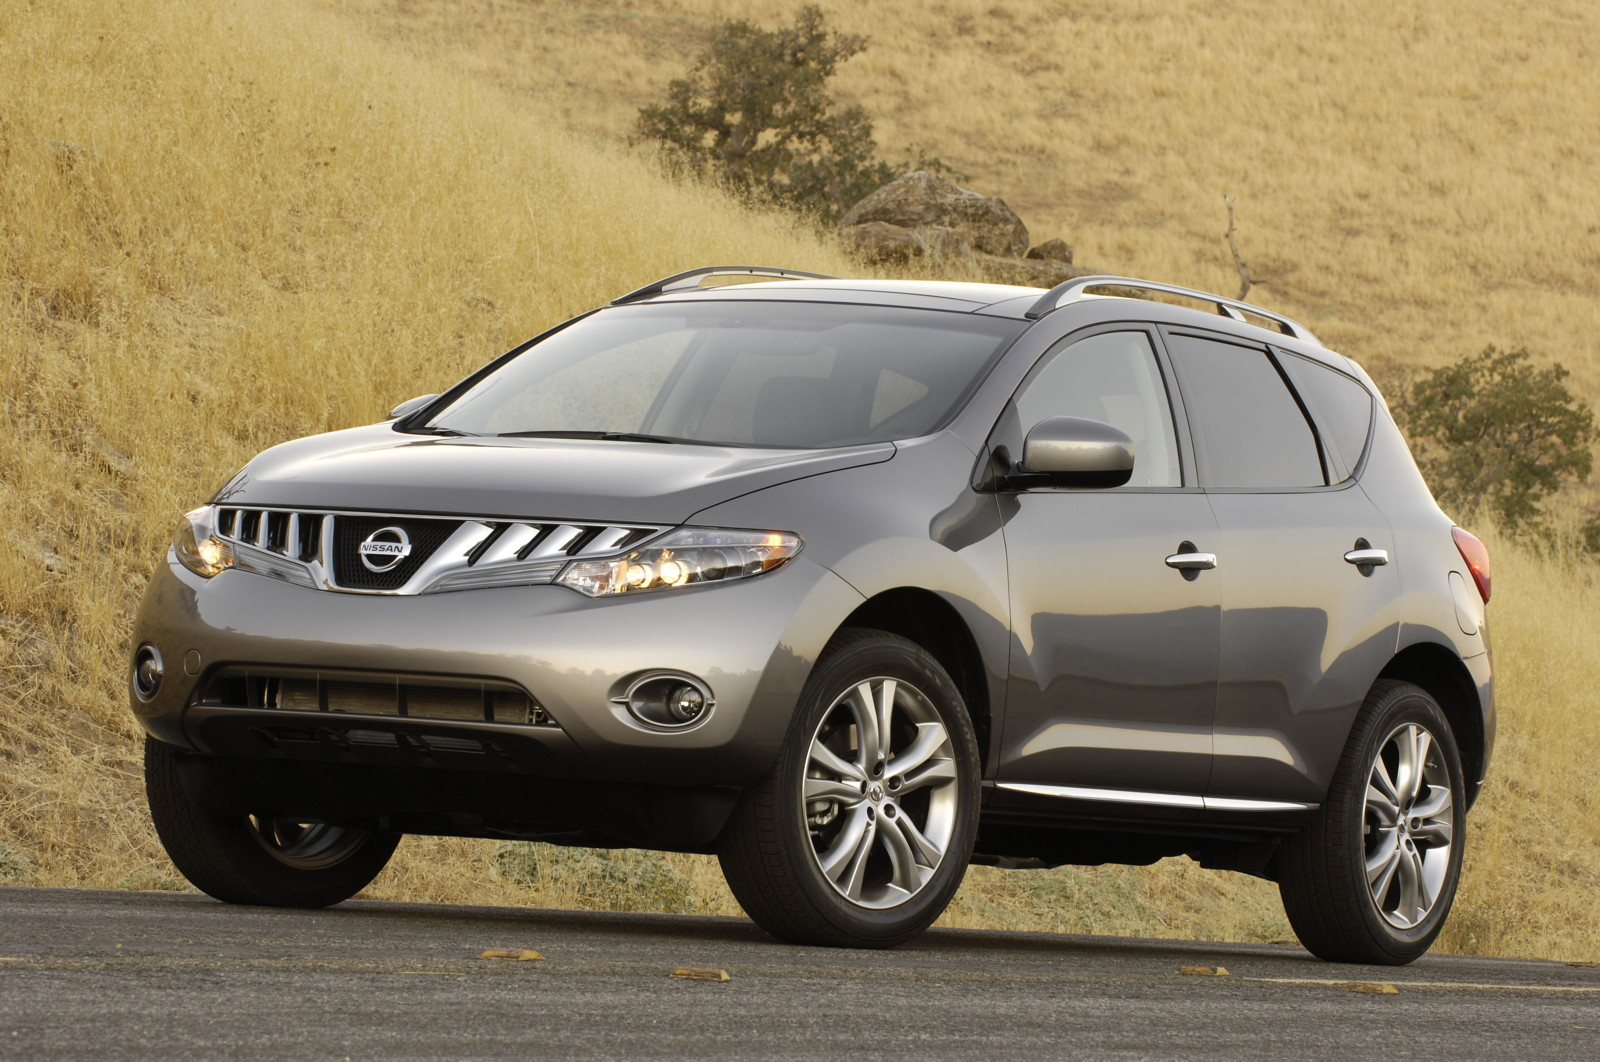 2010 nissan murano review ratings specs prices and photos the car connection. Black Bedroom Furniture Sets. Home Design Ideas